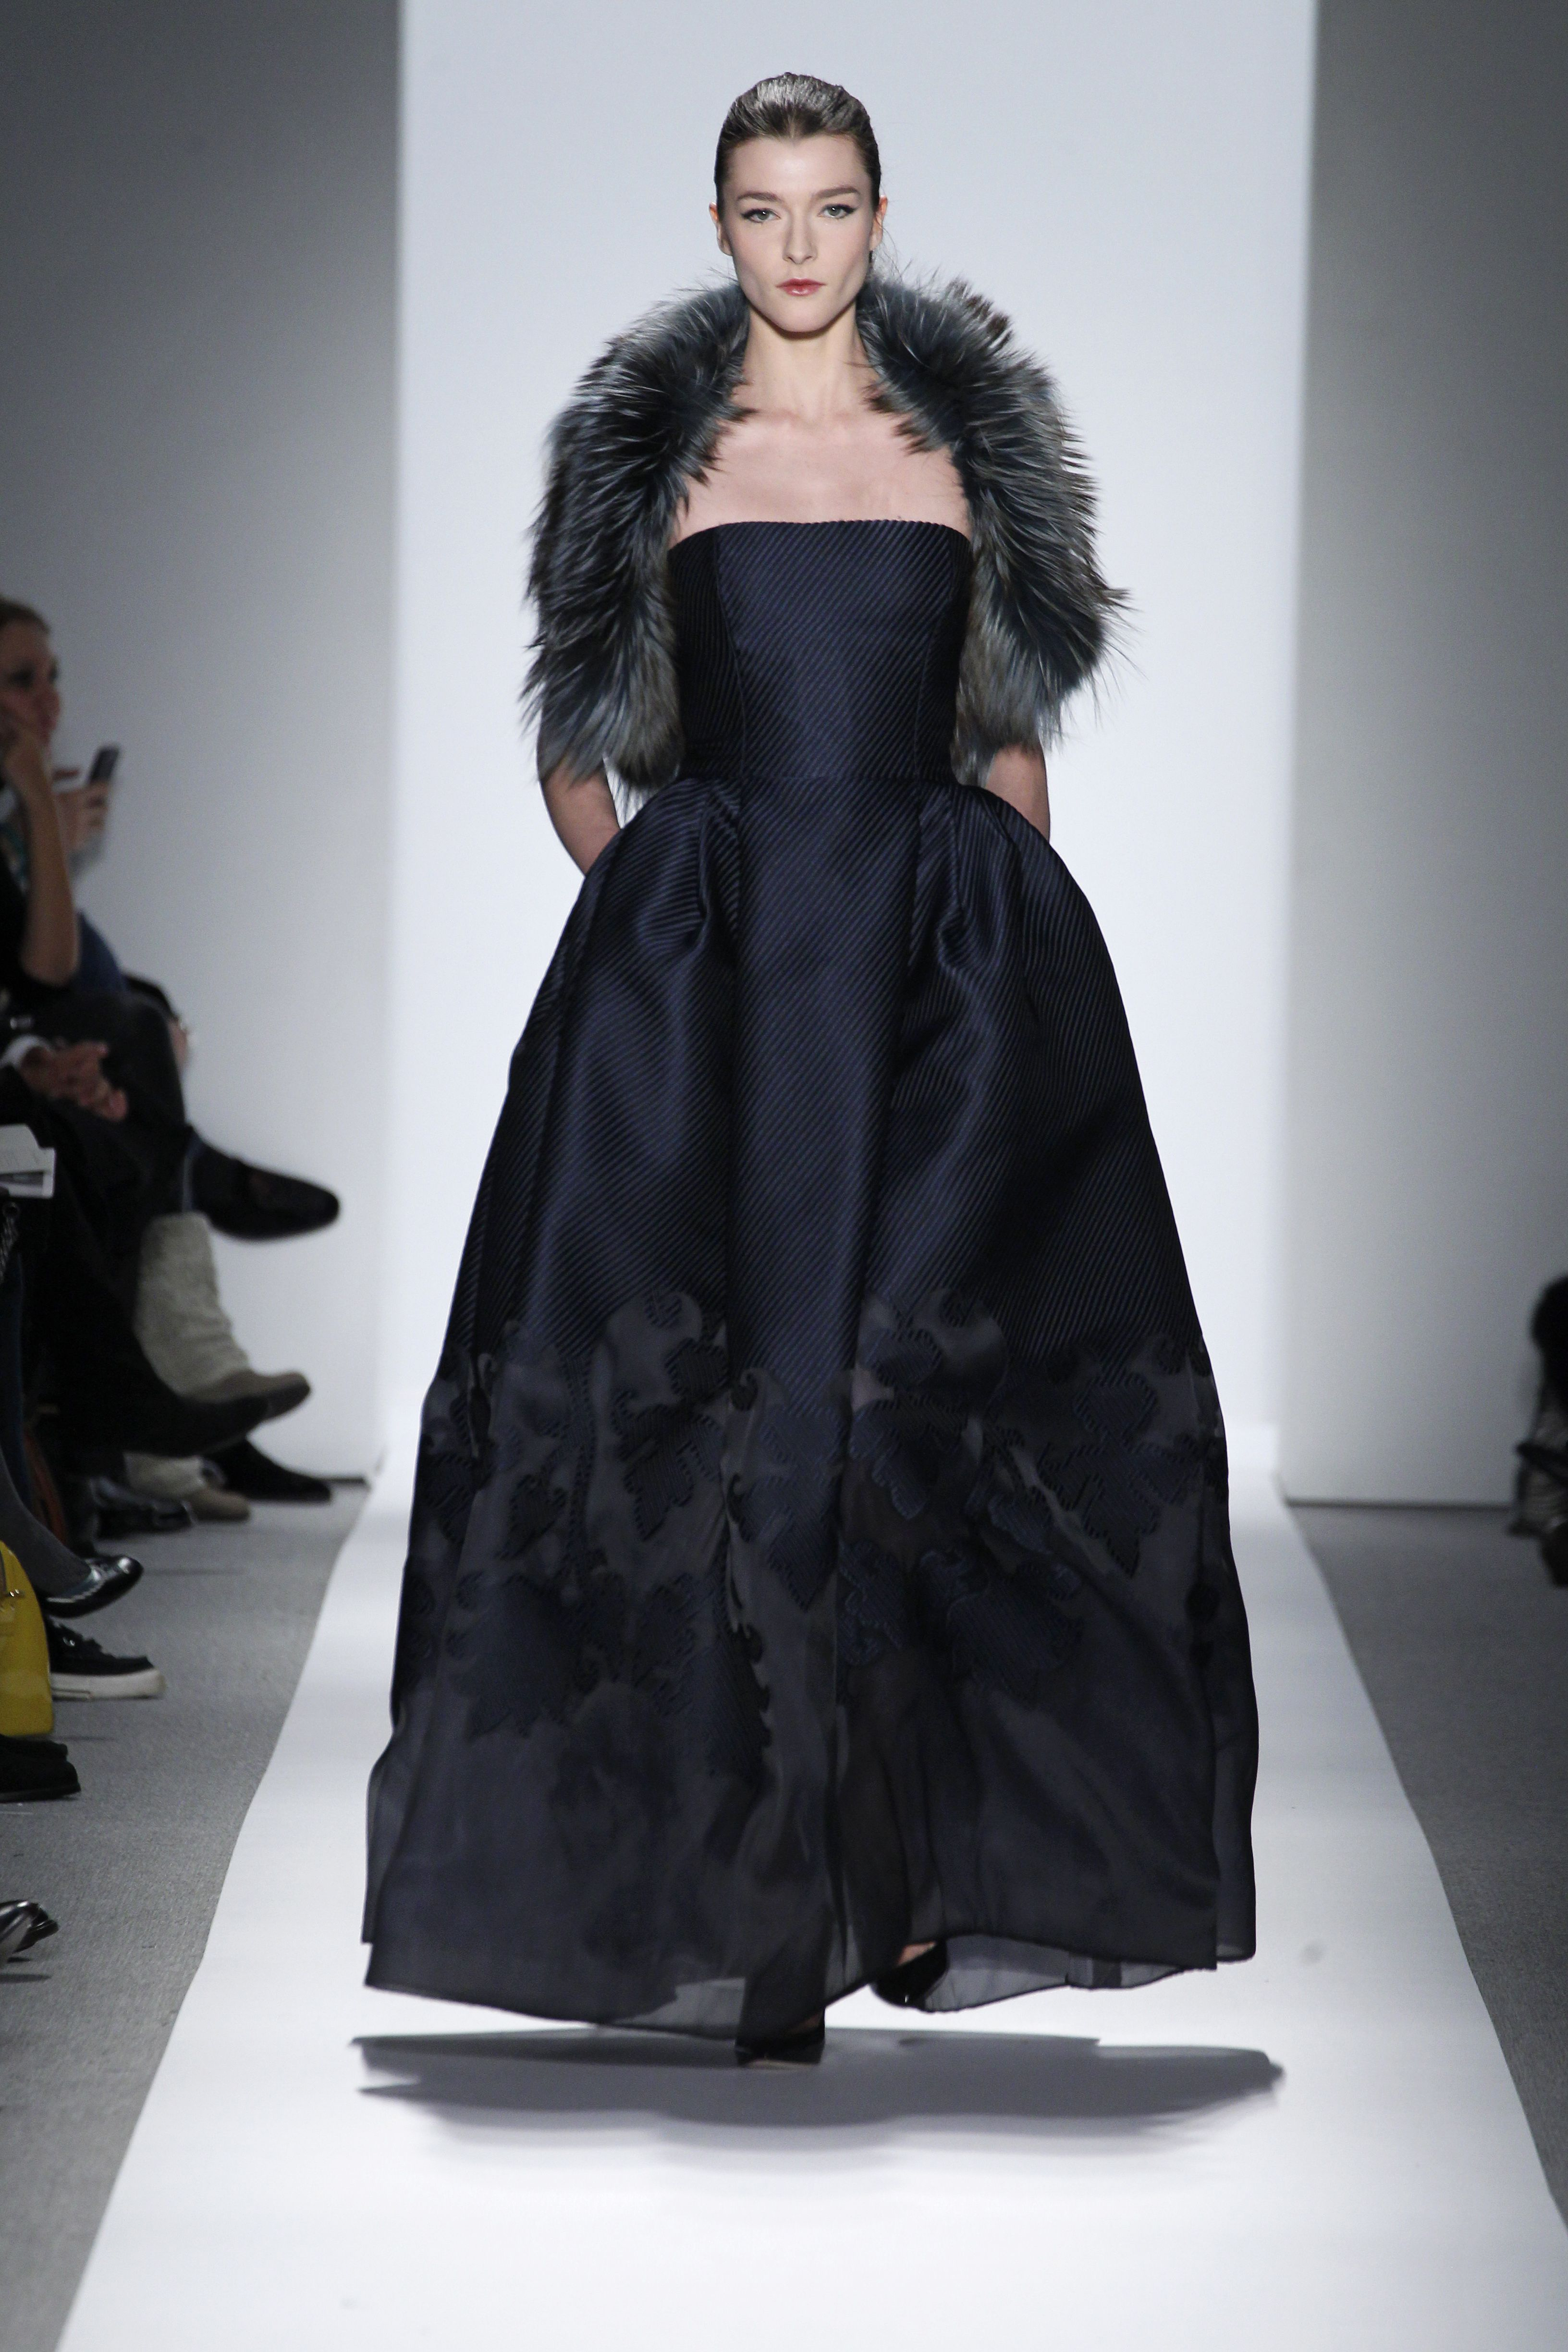 Dennis Basso Fall/Winter 2013 - Midnight ottoman and organza gown with evergreen fox and velvet shrug